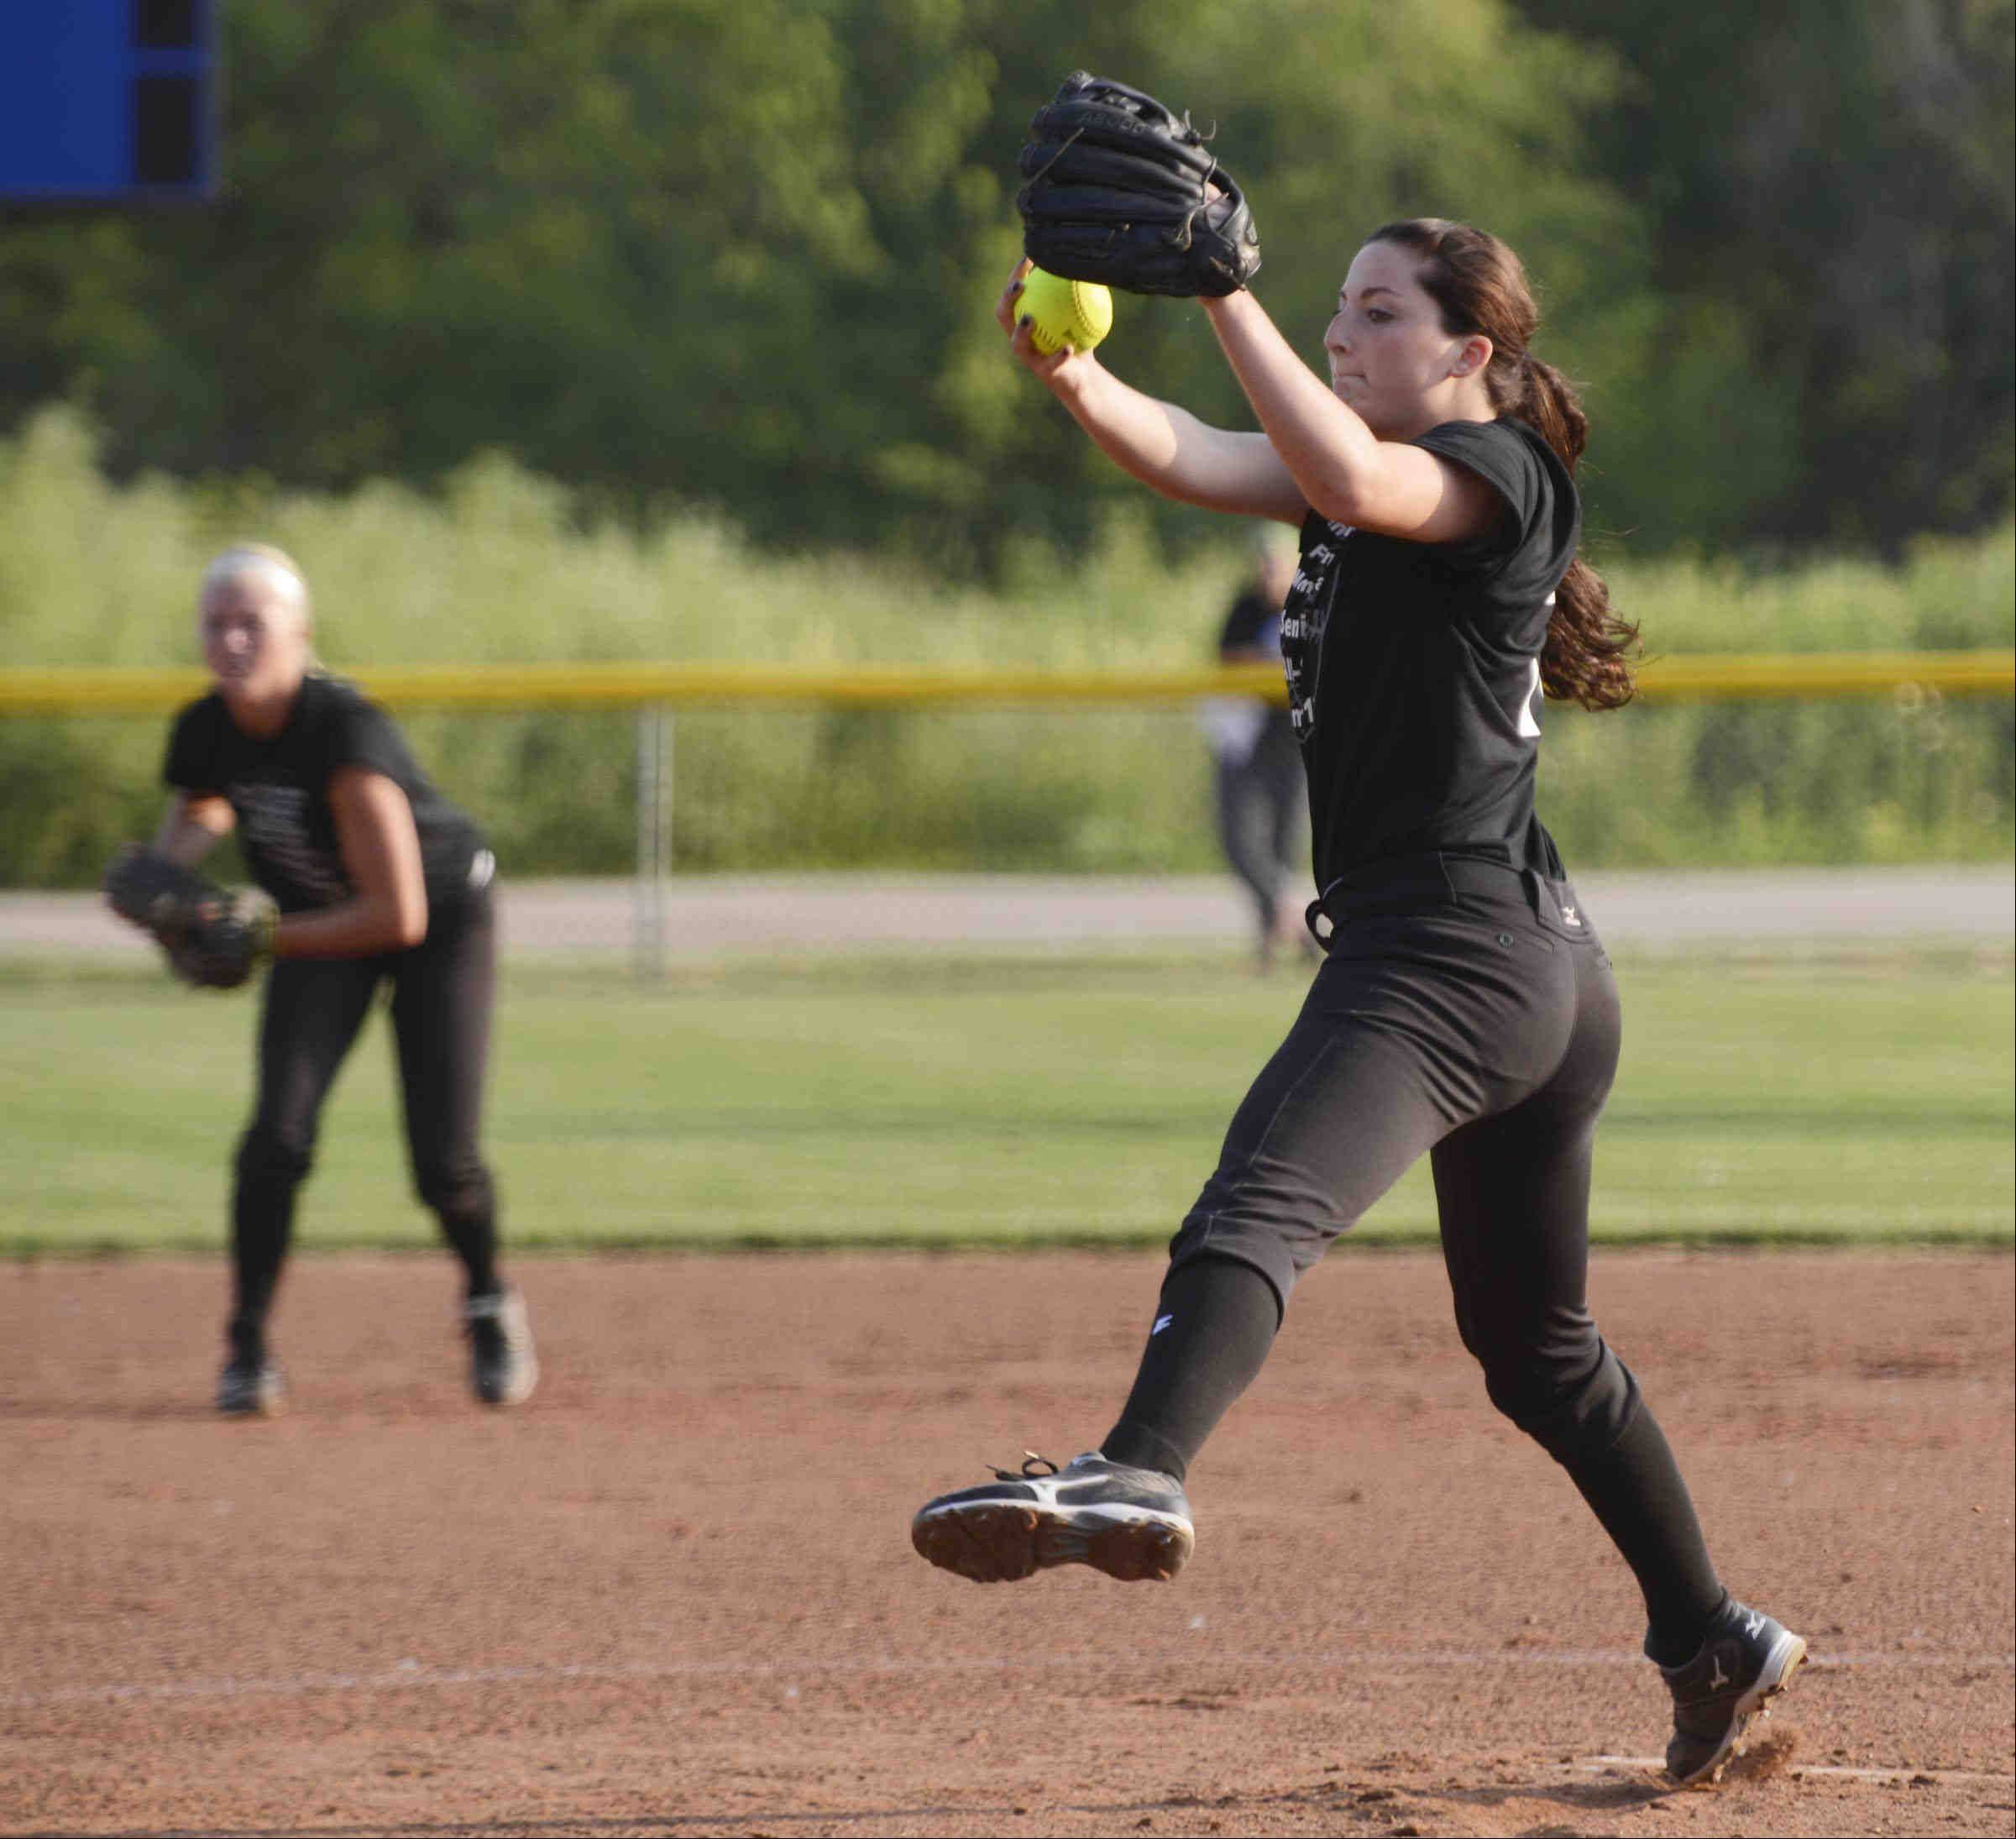 East All Star pitcher Danielle Jecmen of Lake Park High School delivers Monday during the Tenth Annual Fehlman Memorial Senior All-Star softball game at Judson University.